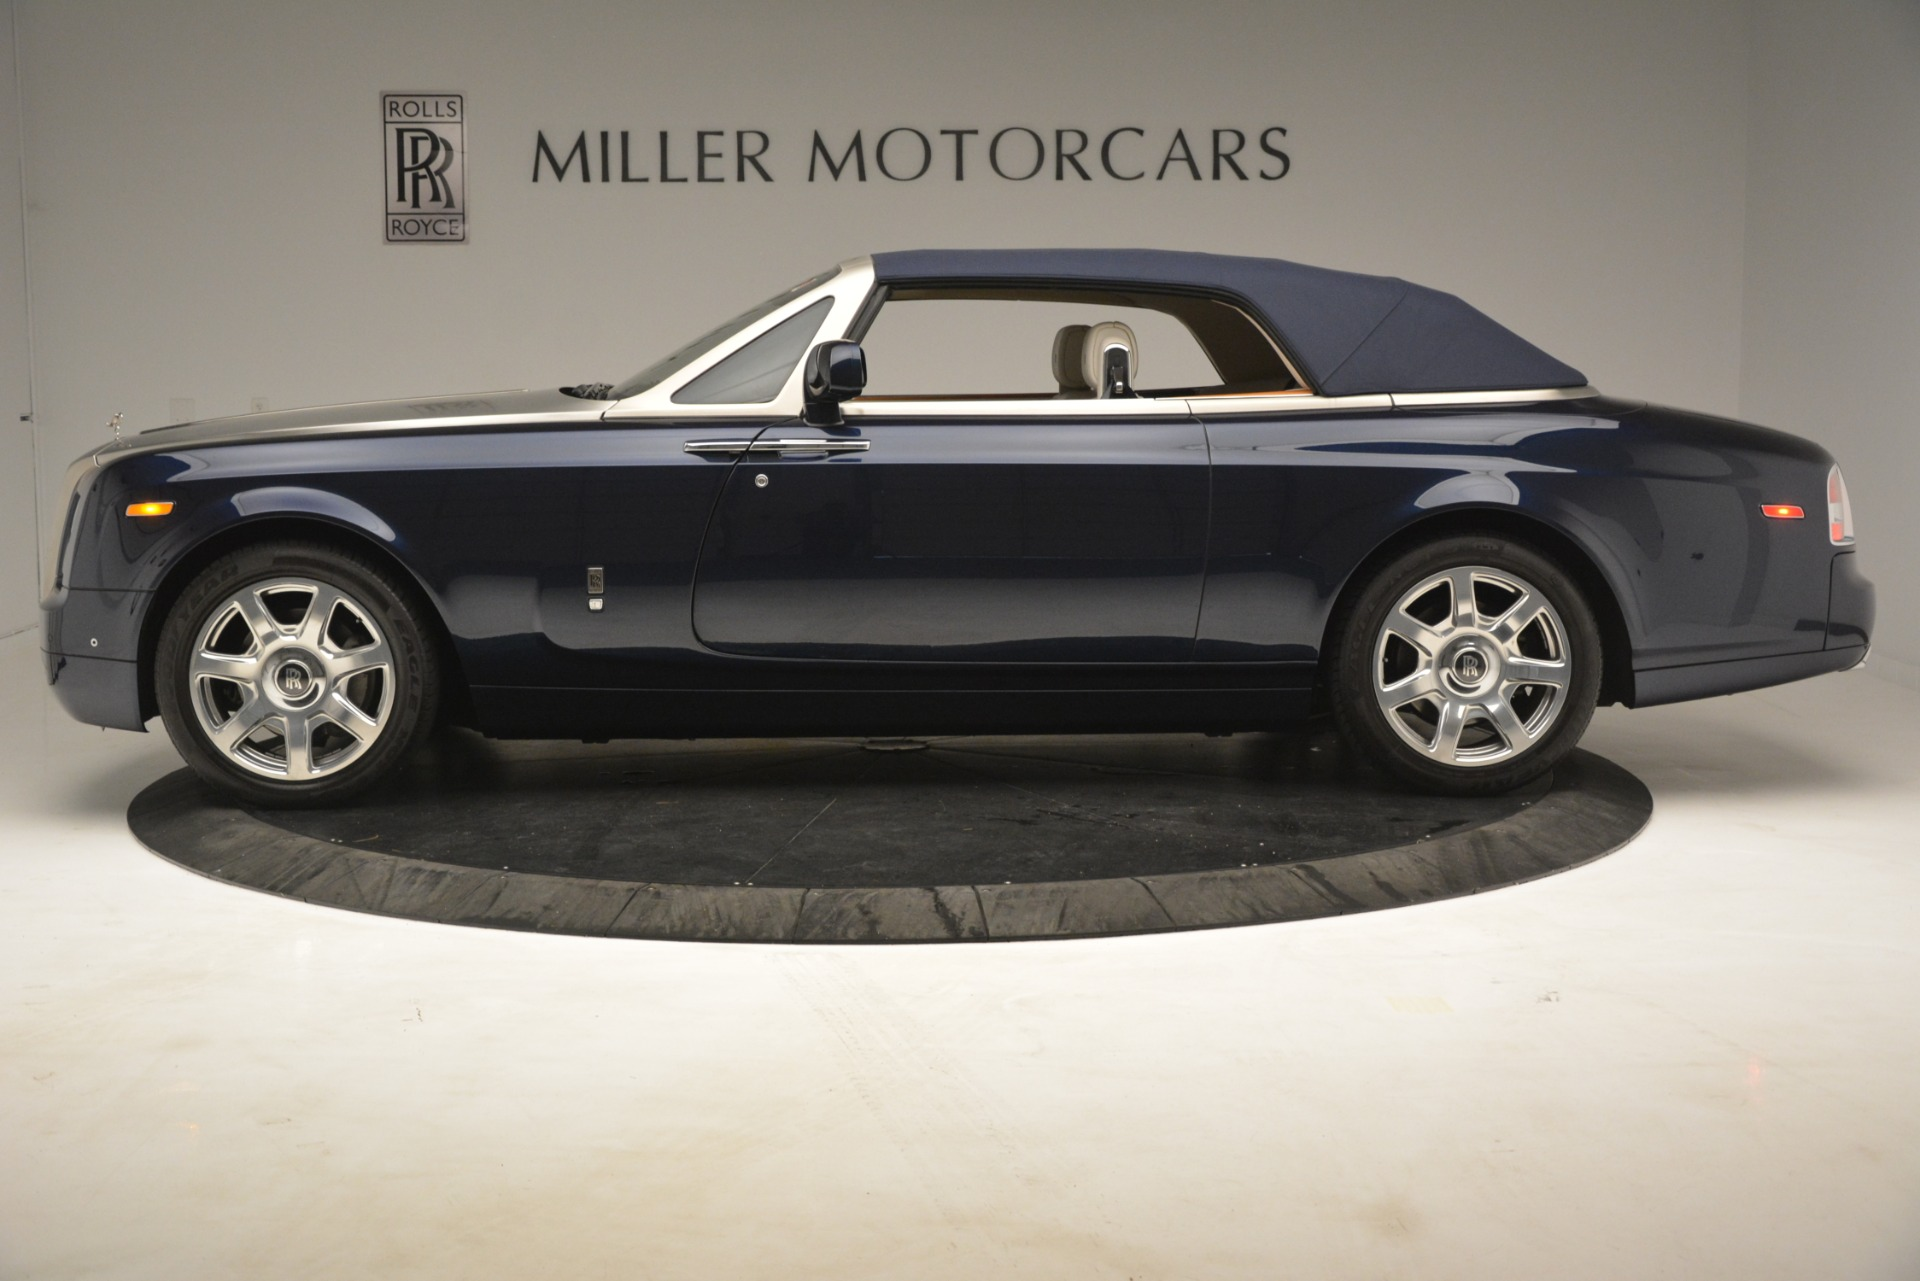 Used 2013 Rolls-Royce Phantom Drophead Coupe  For Sale In Westport, CT 2999_p18